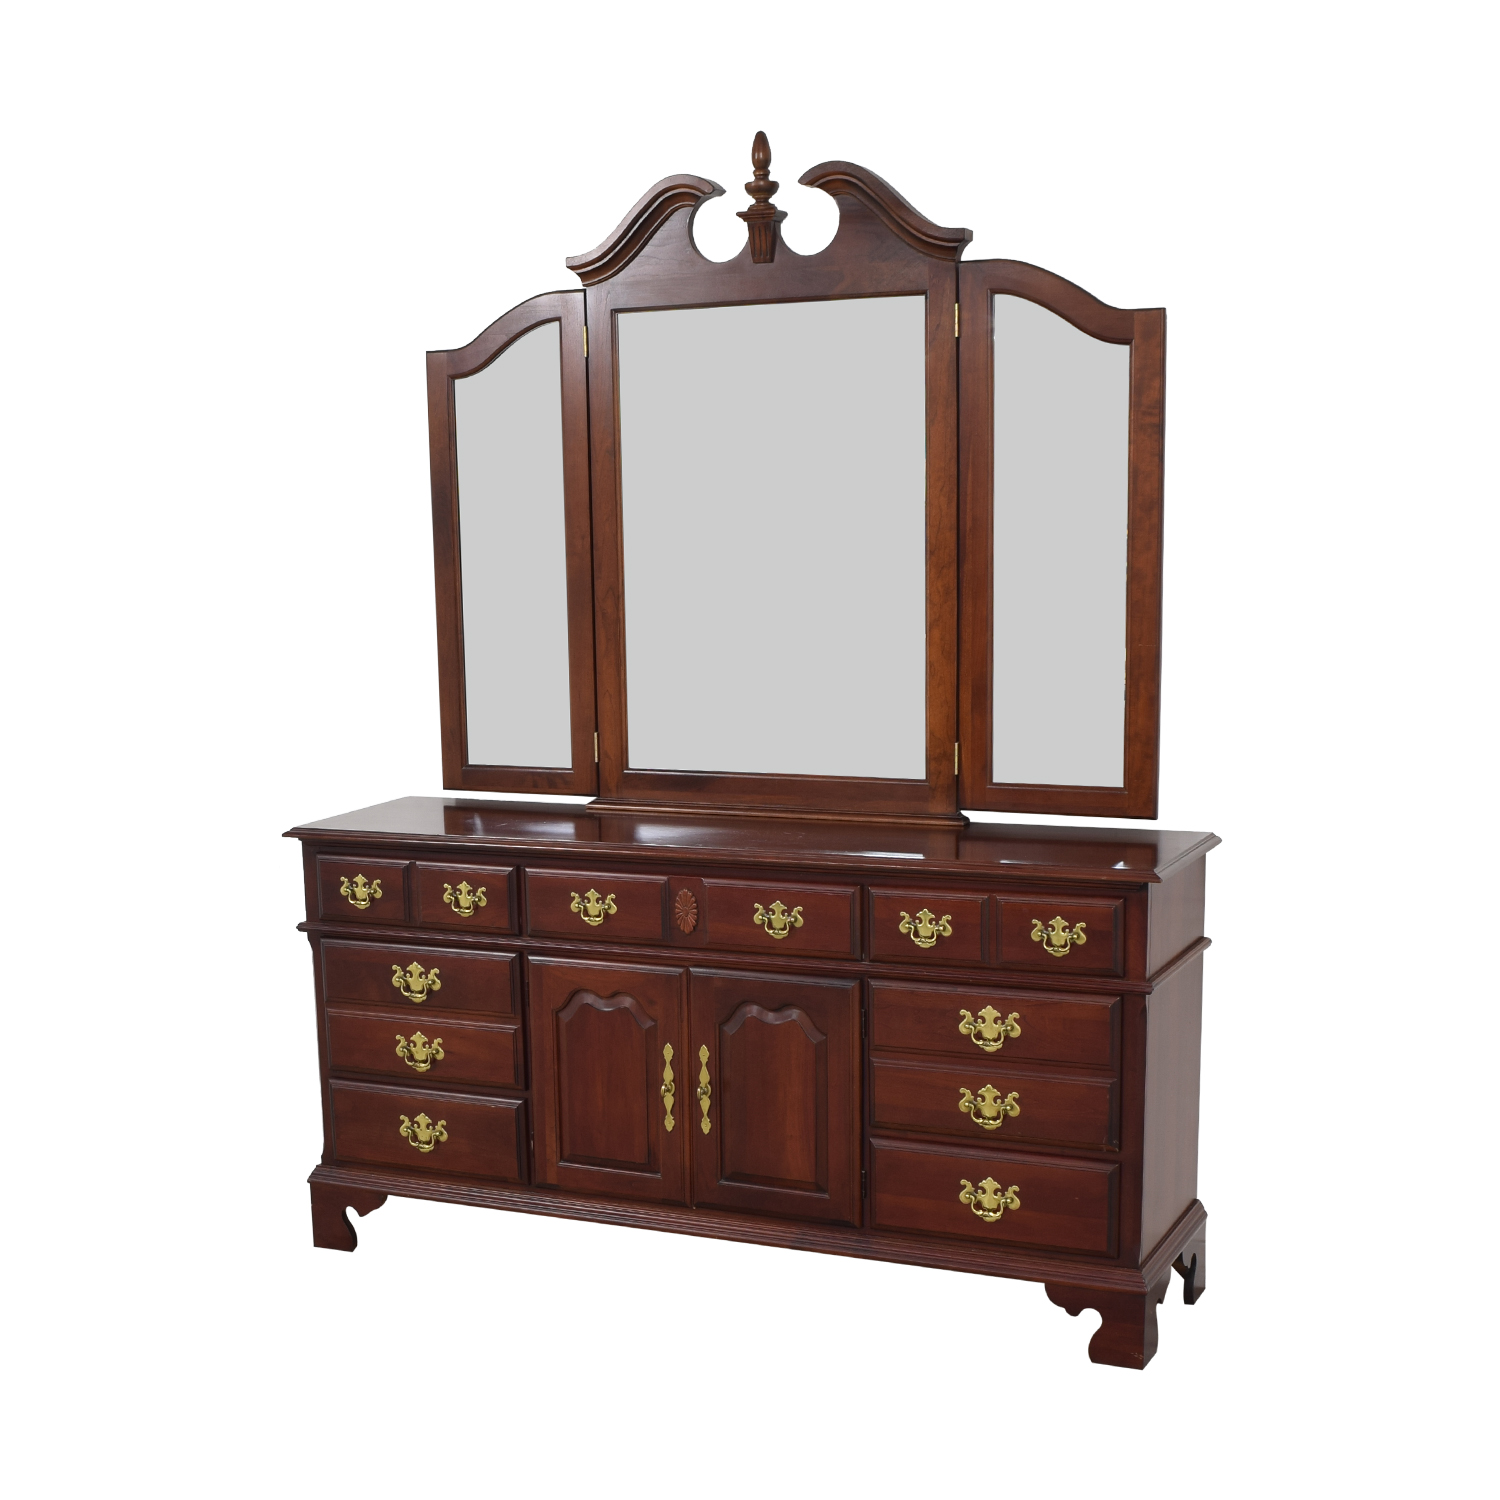 Pennsylvania House Pennsylvania House Seven Drawer Dresser with Cabinets pa